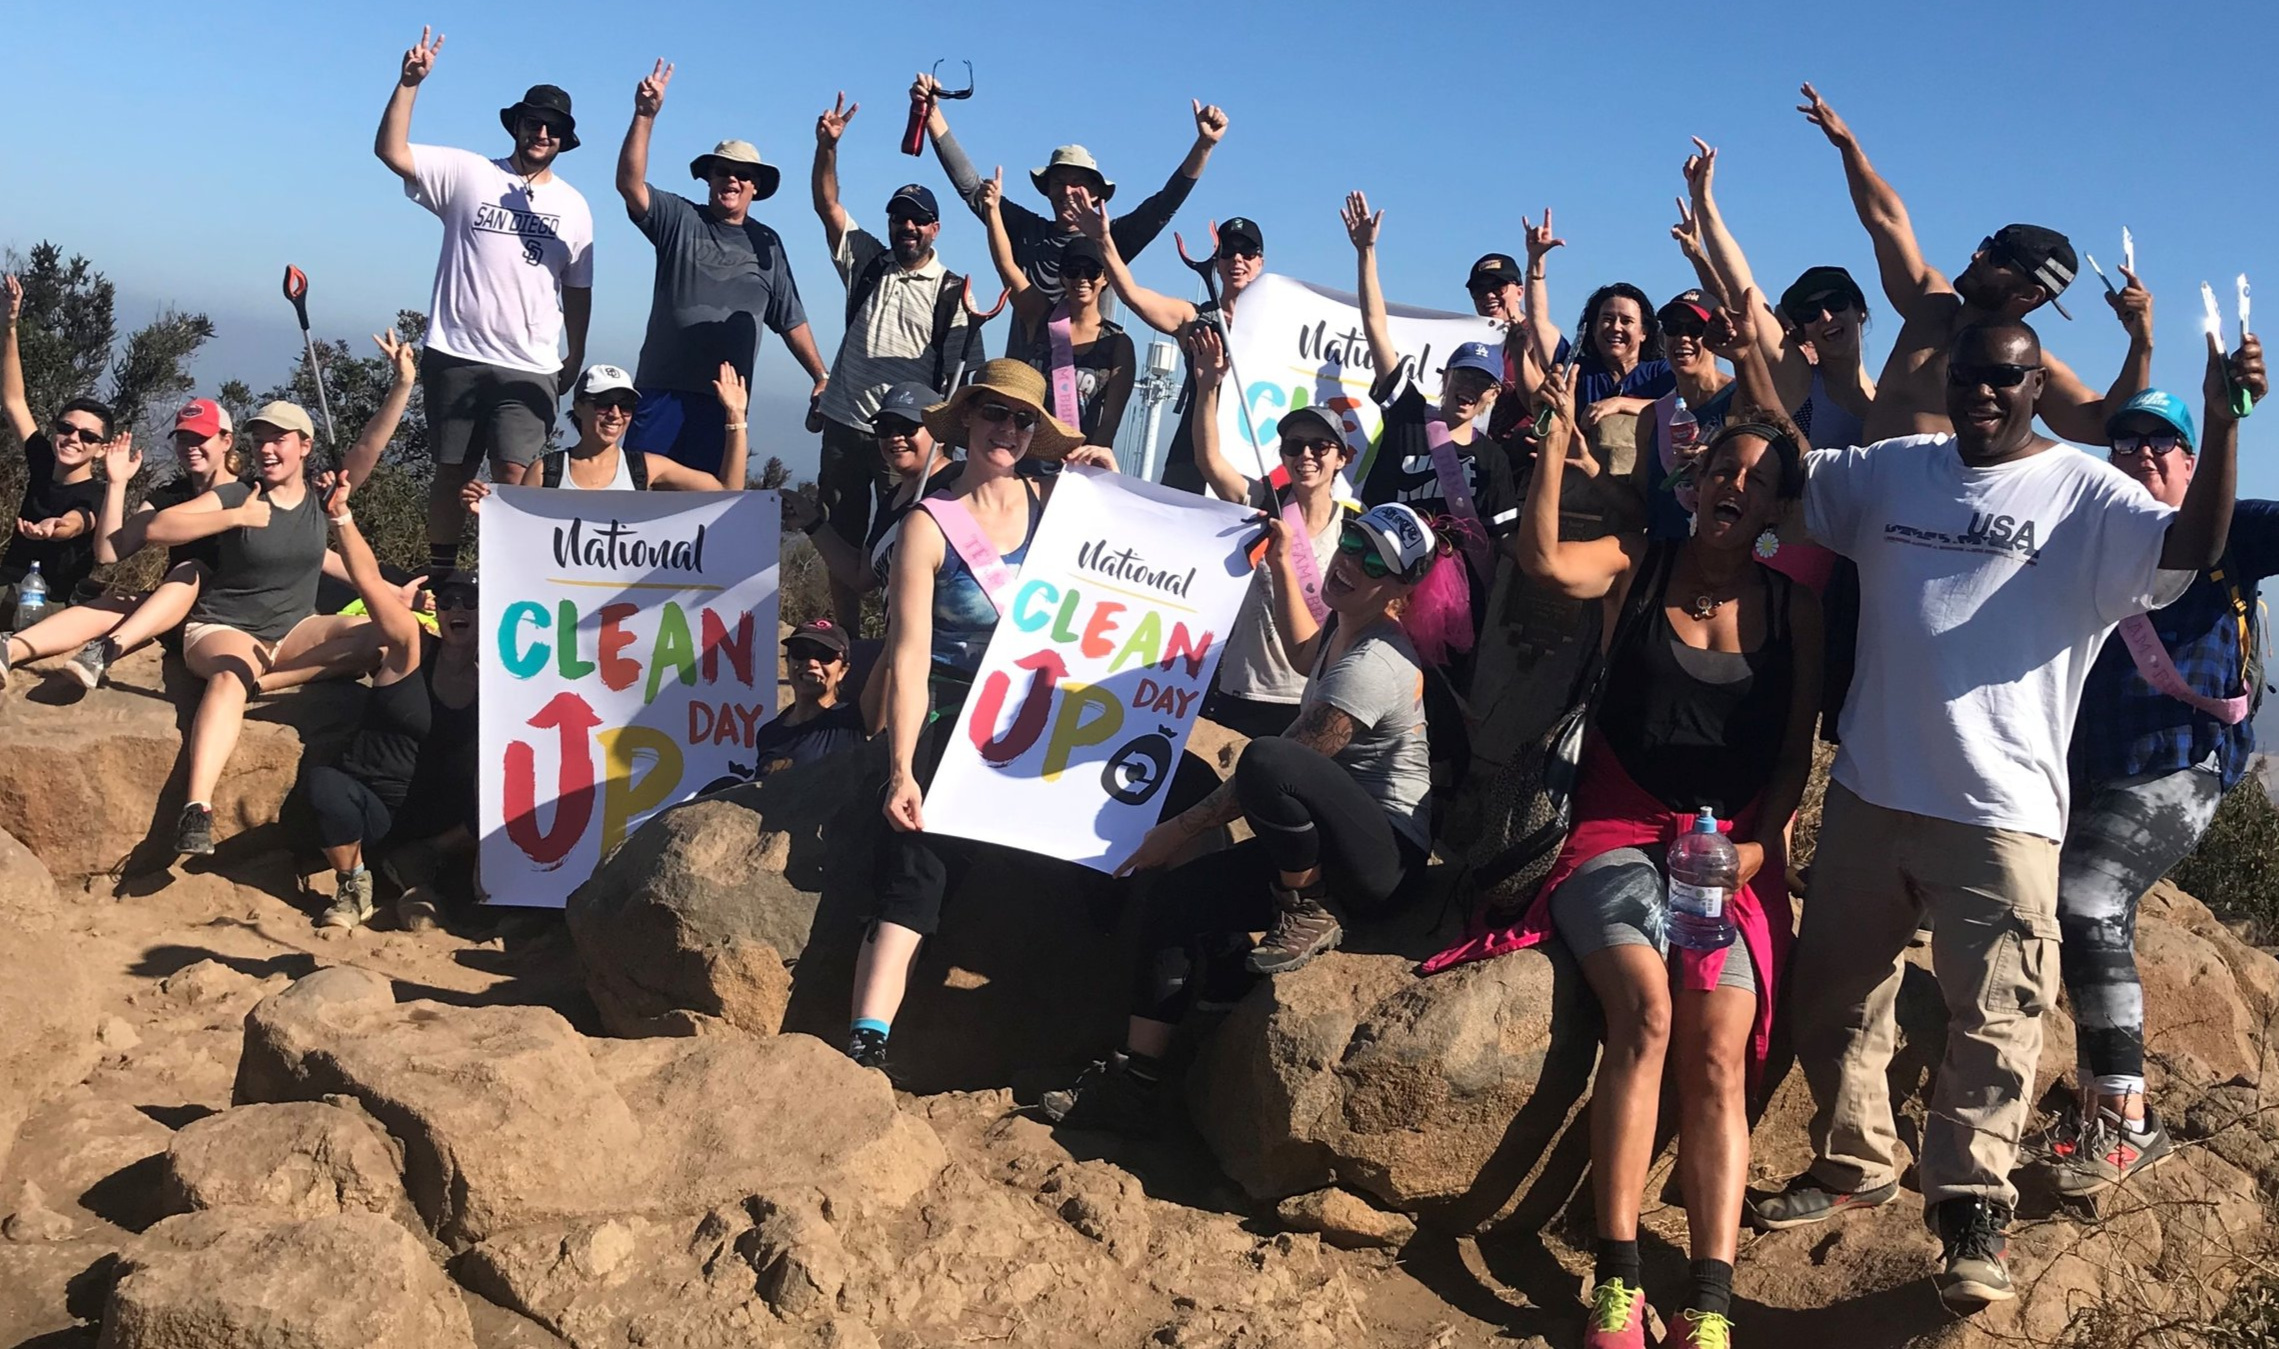 Cowles+Mountain+NationalCleanUp+Day+Gorup+8-2019.jpg